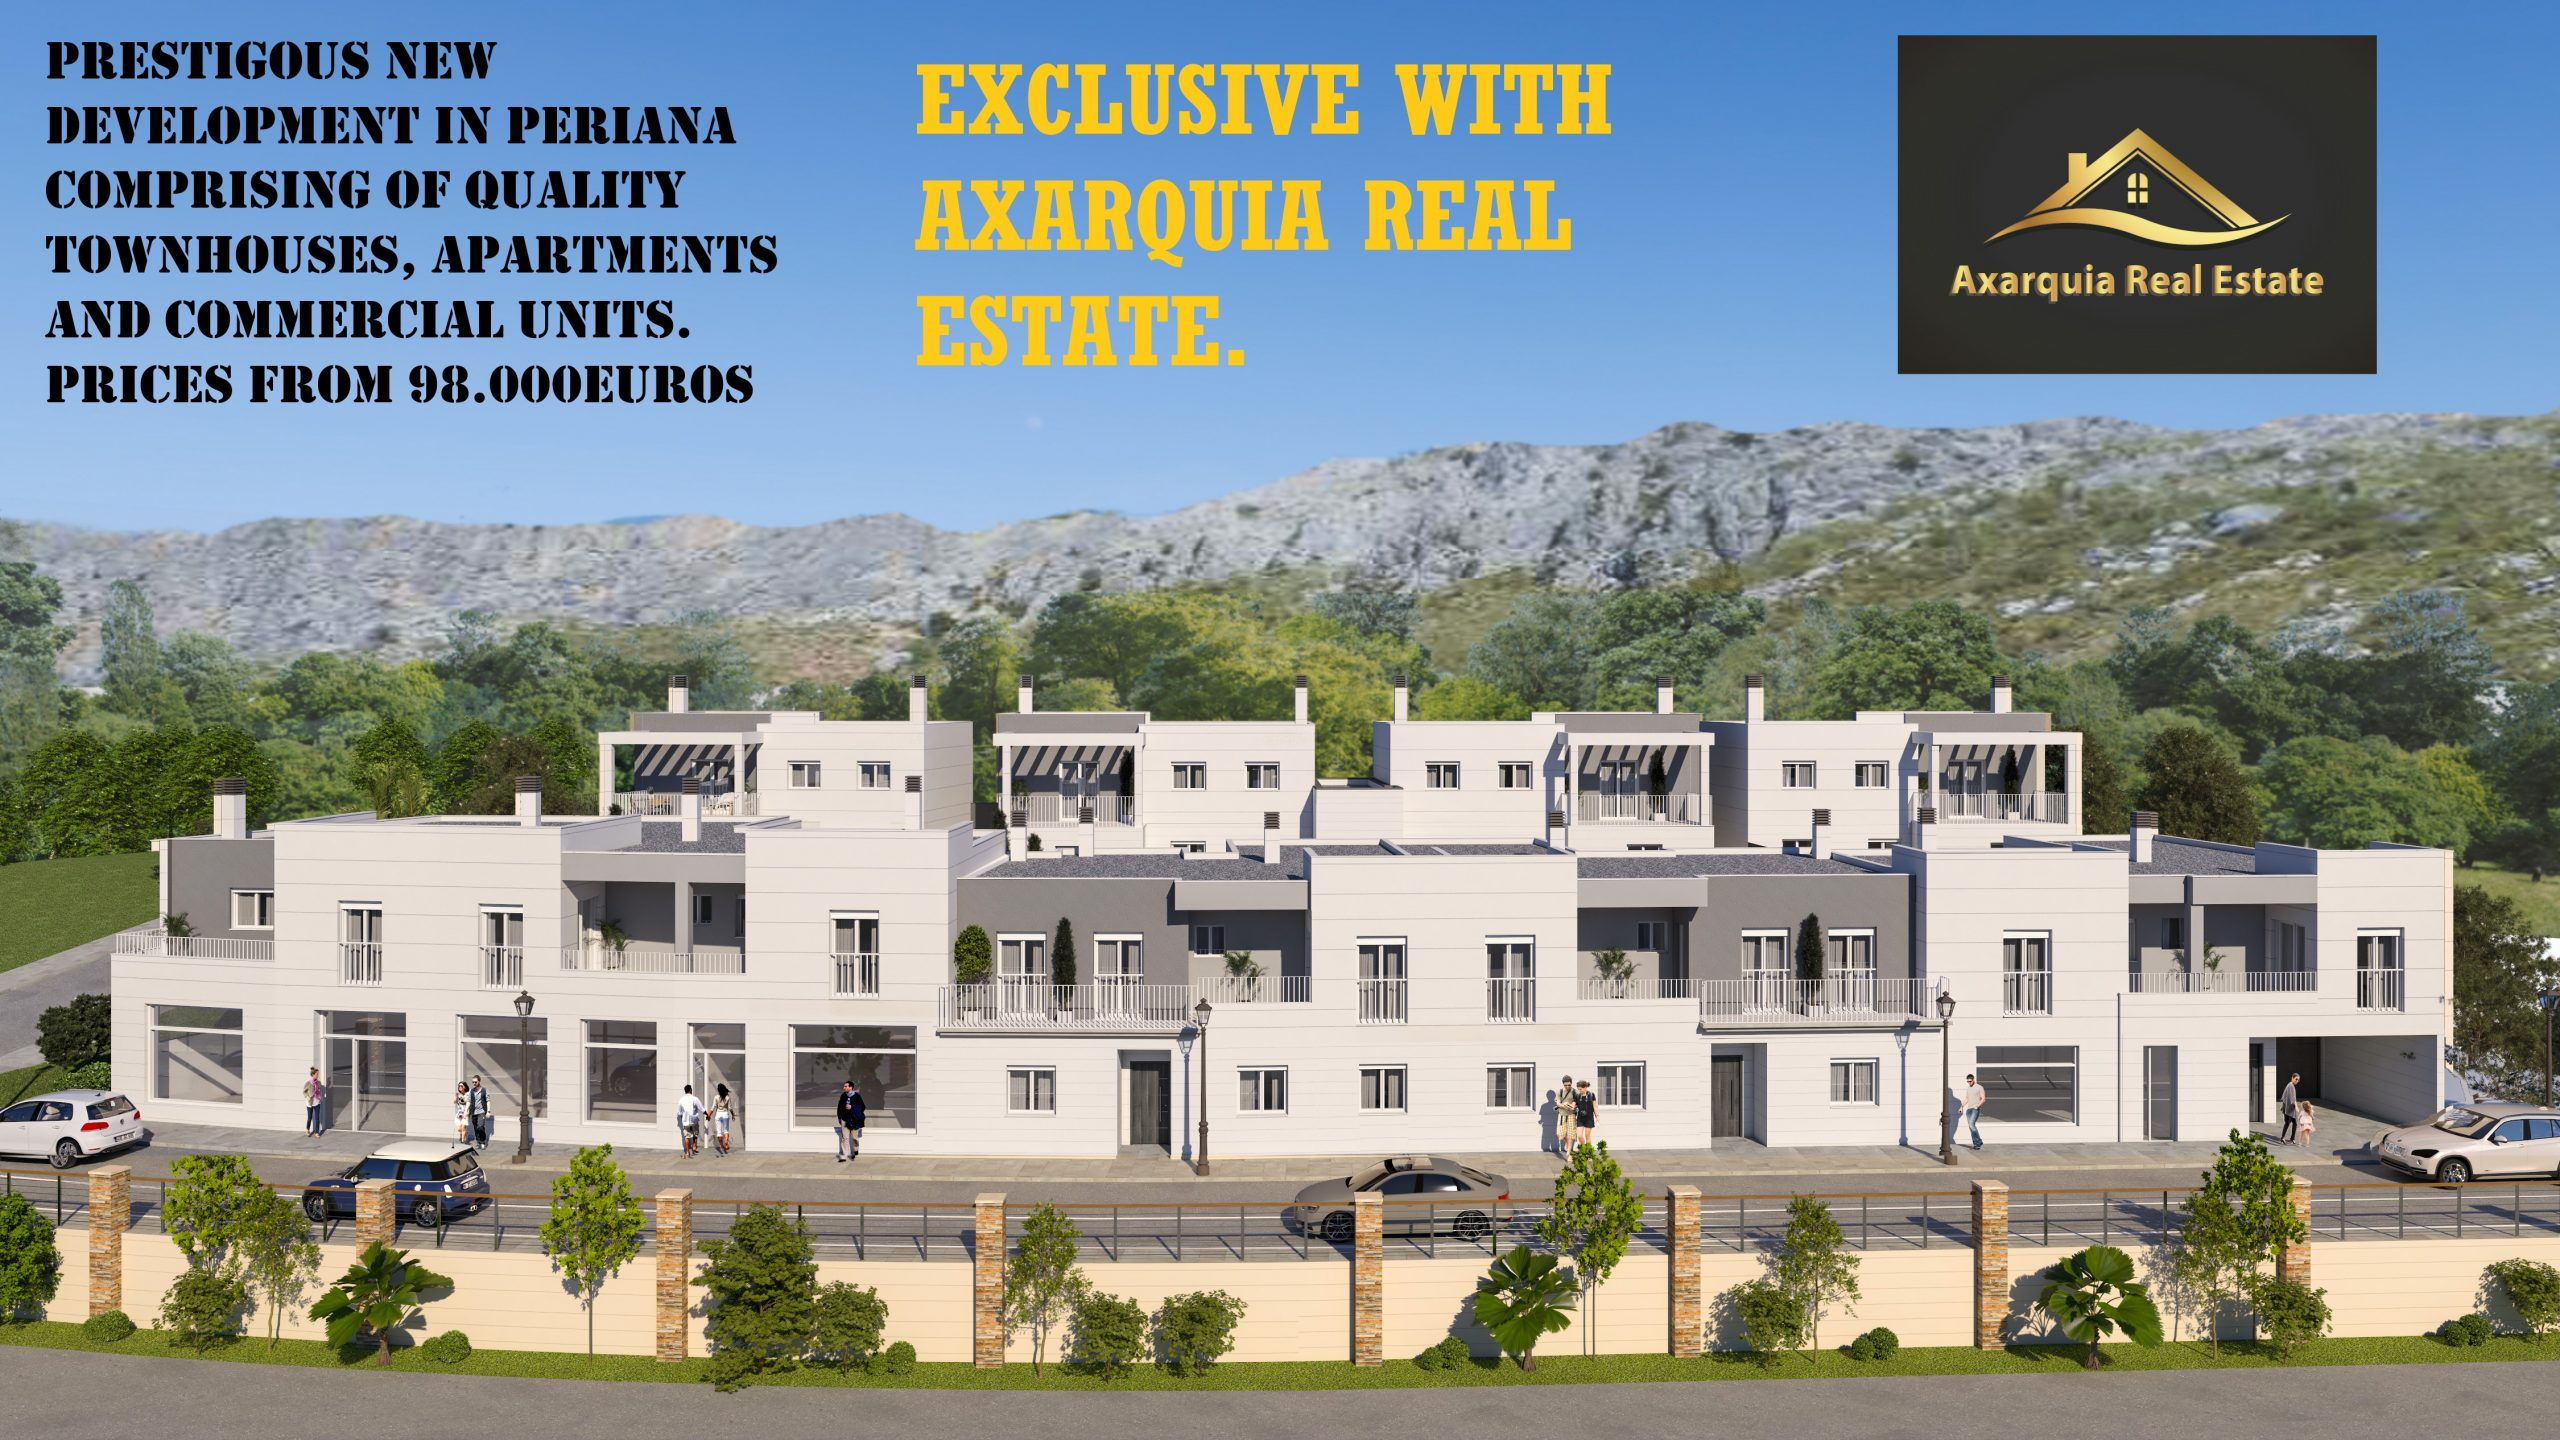 PRESTIGIOUS NEW DEVELOPMENT IN PERIANA COMPROMISING OF QUALITY TOWNHOUSES, APARTMENTS AND COMMERCIAL UNITS. PRICES FROM 98.000euros. Completion 2021.